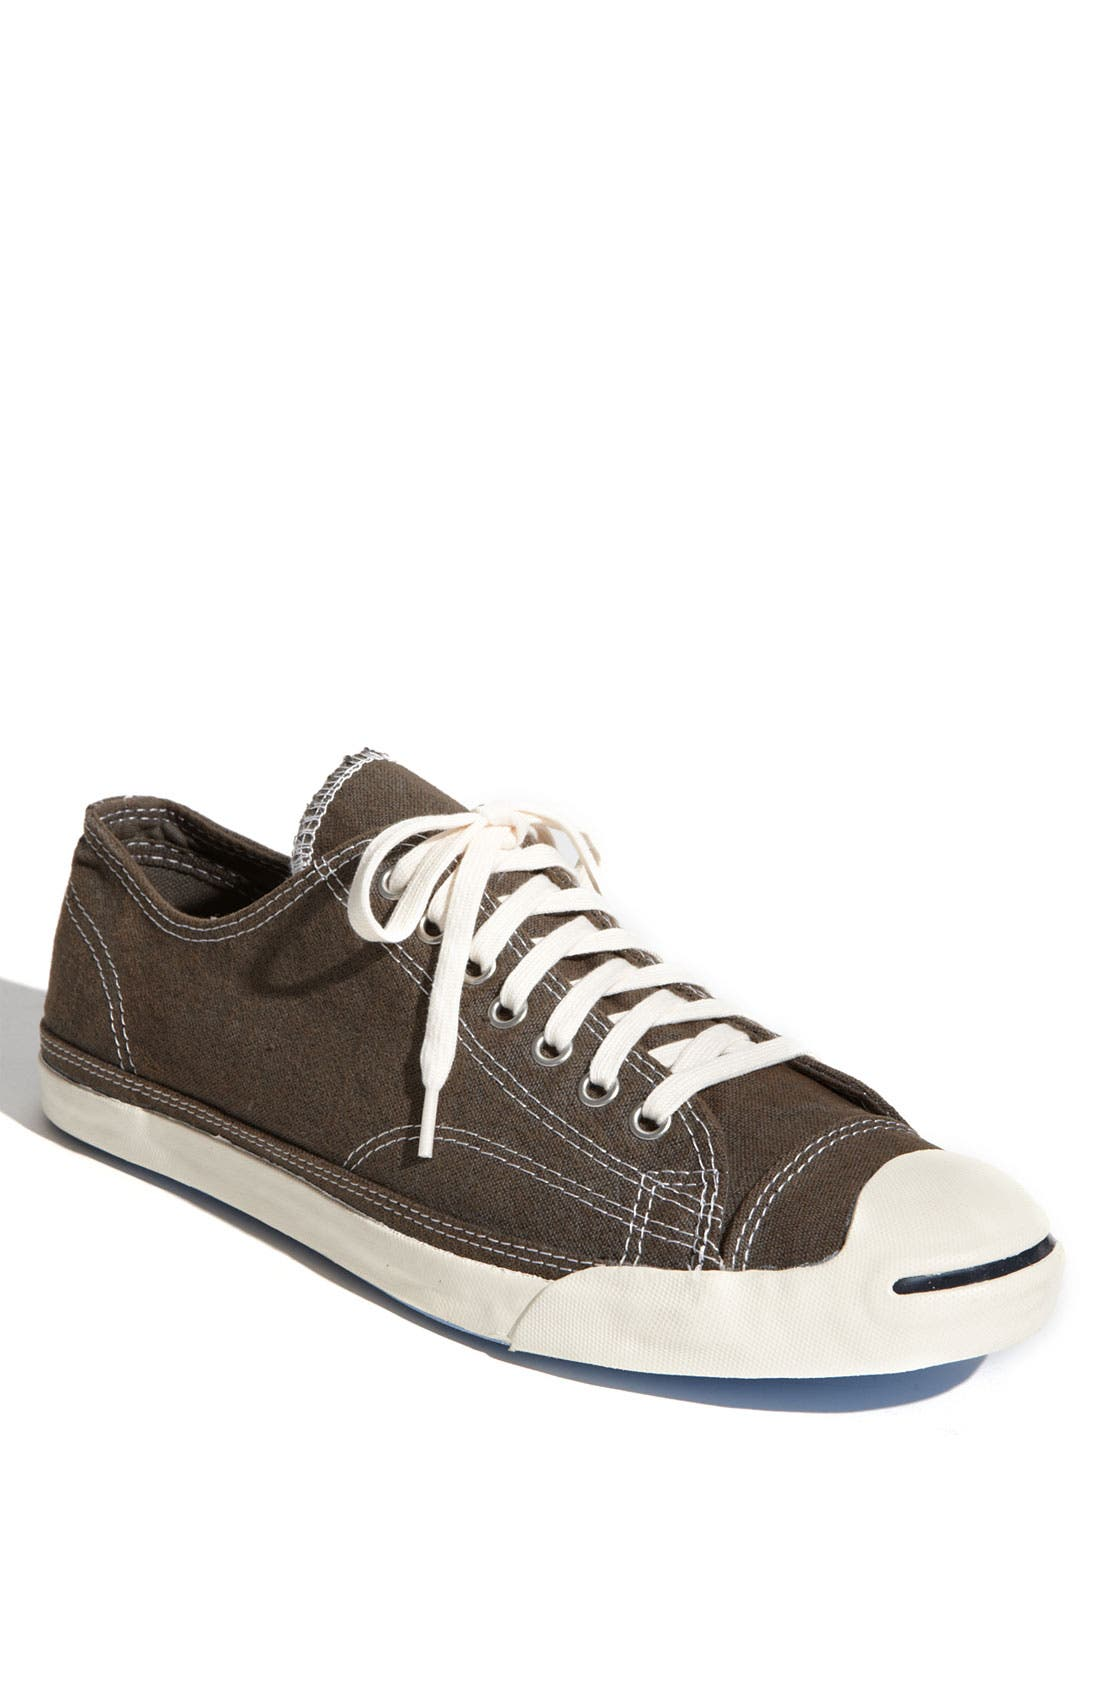 Main Image - Converse 'Jack Purcell' Sneaker